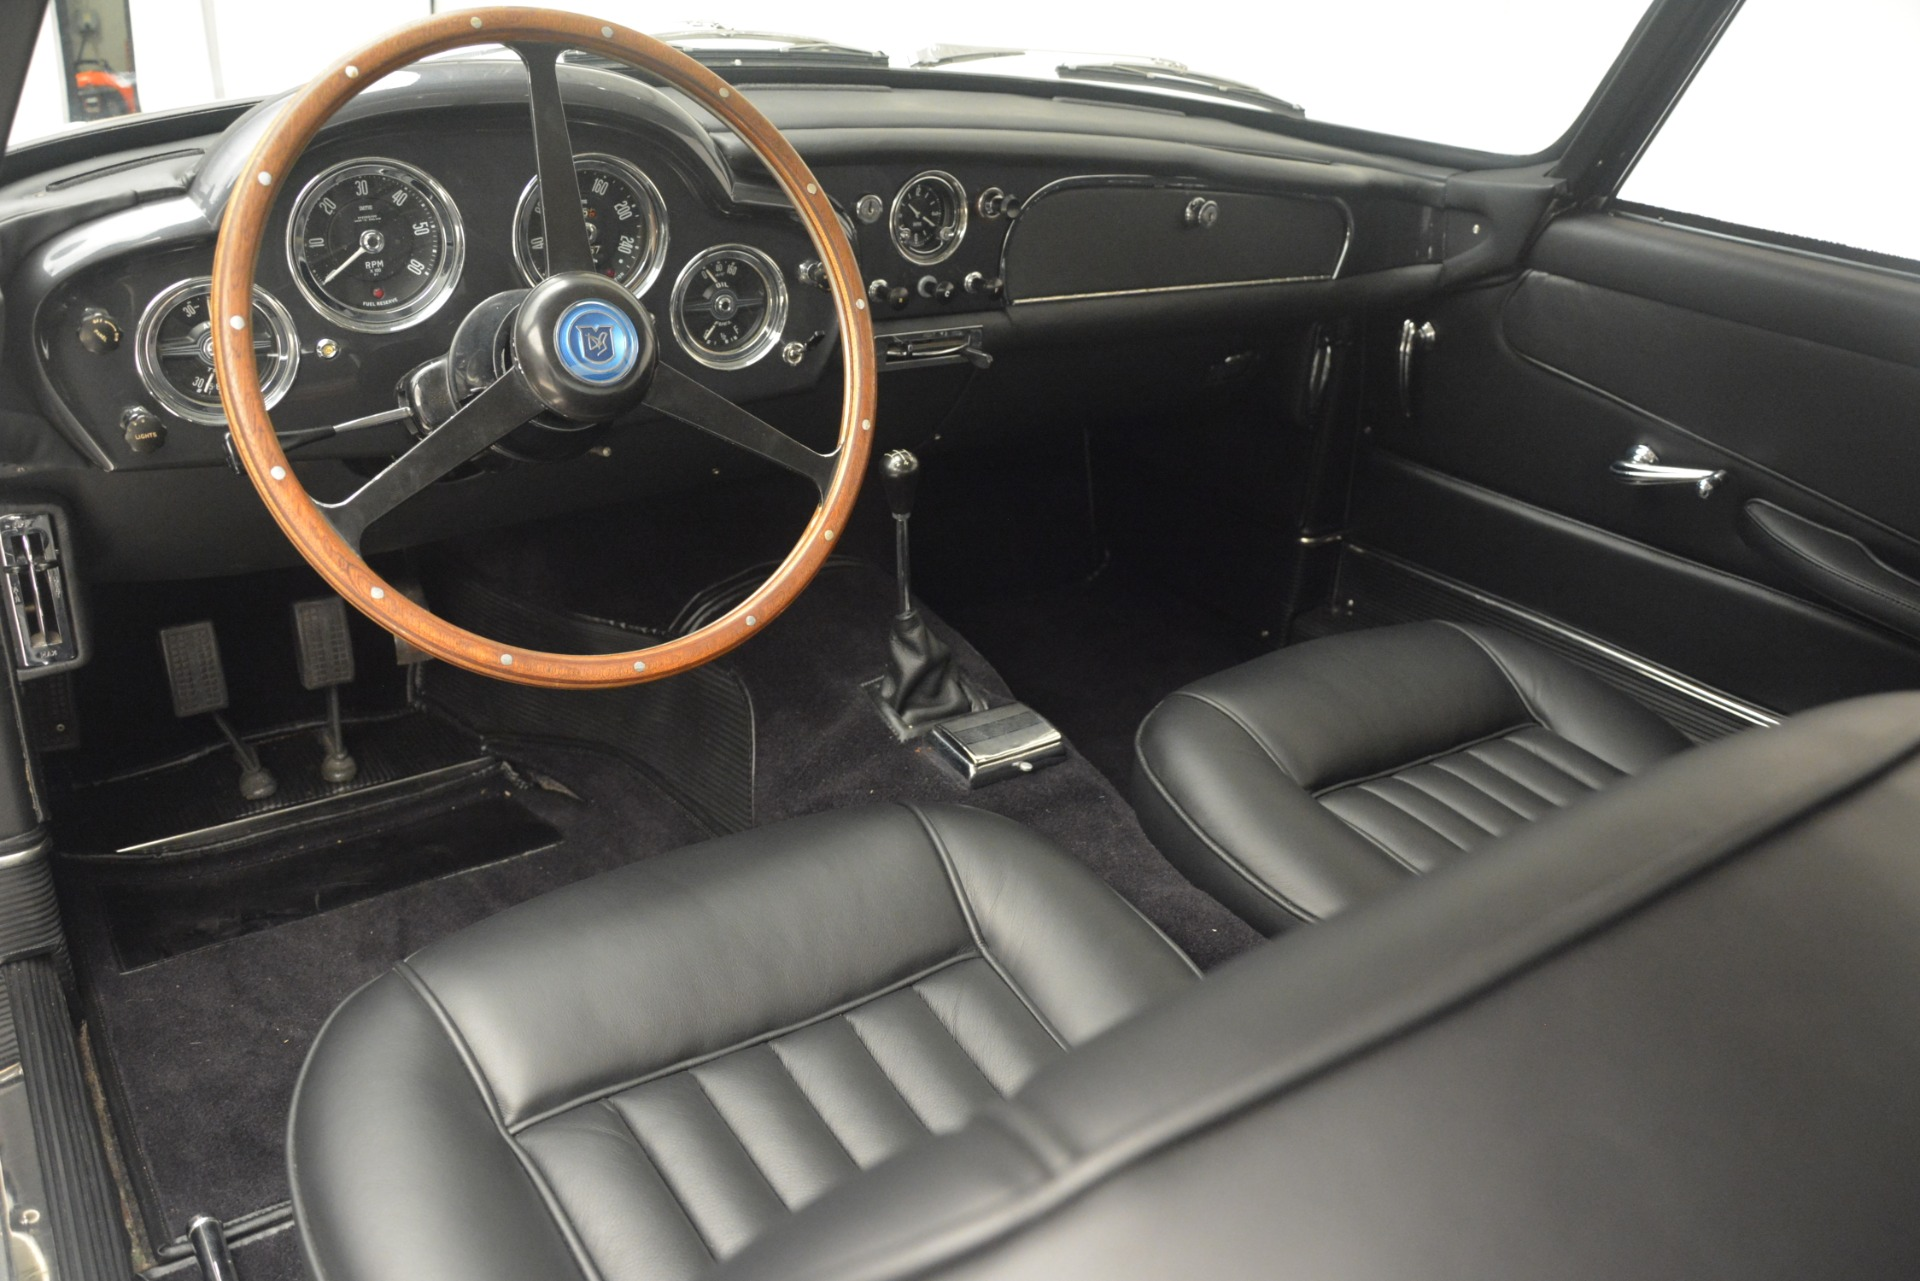 Used 1961 Aston Martin DB4 Series IV Coupe For Sale In Westport, CT 3186_p21